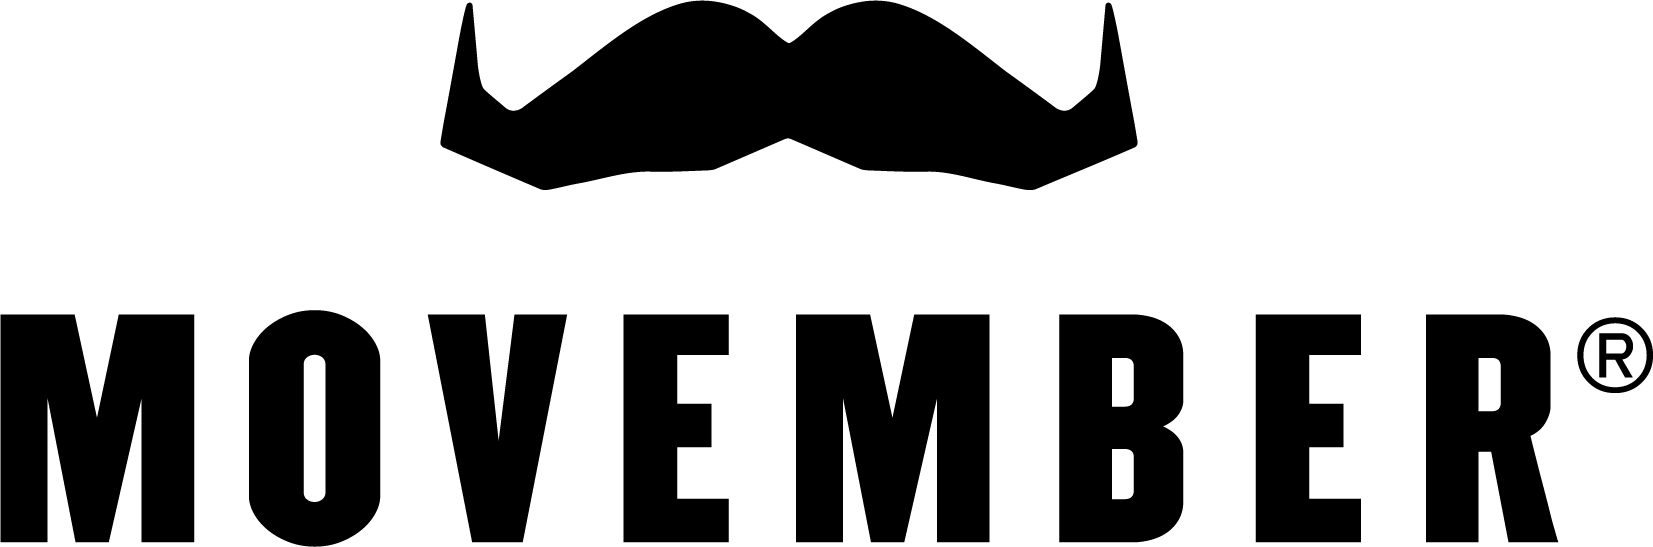 movember_primary-logo_black